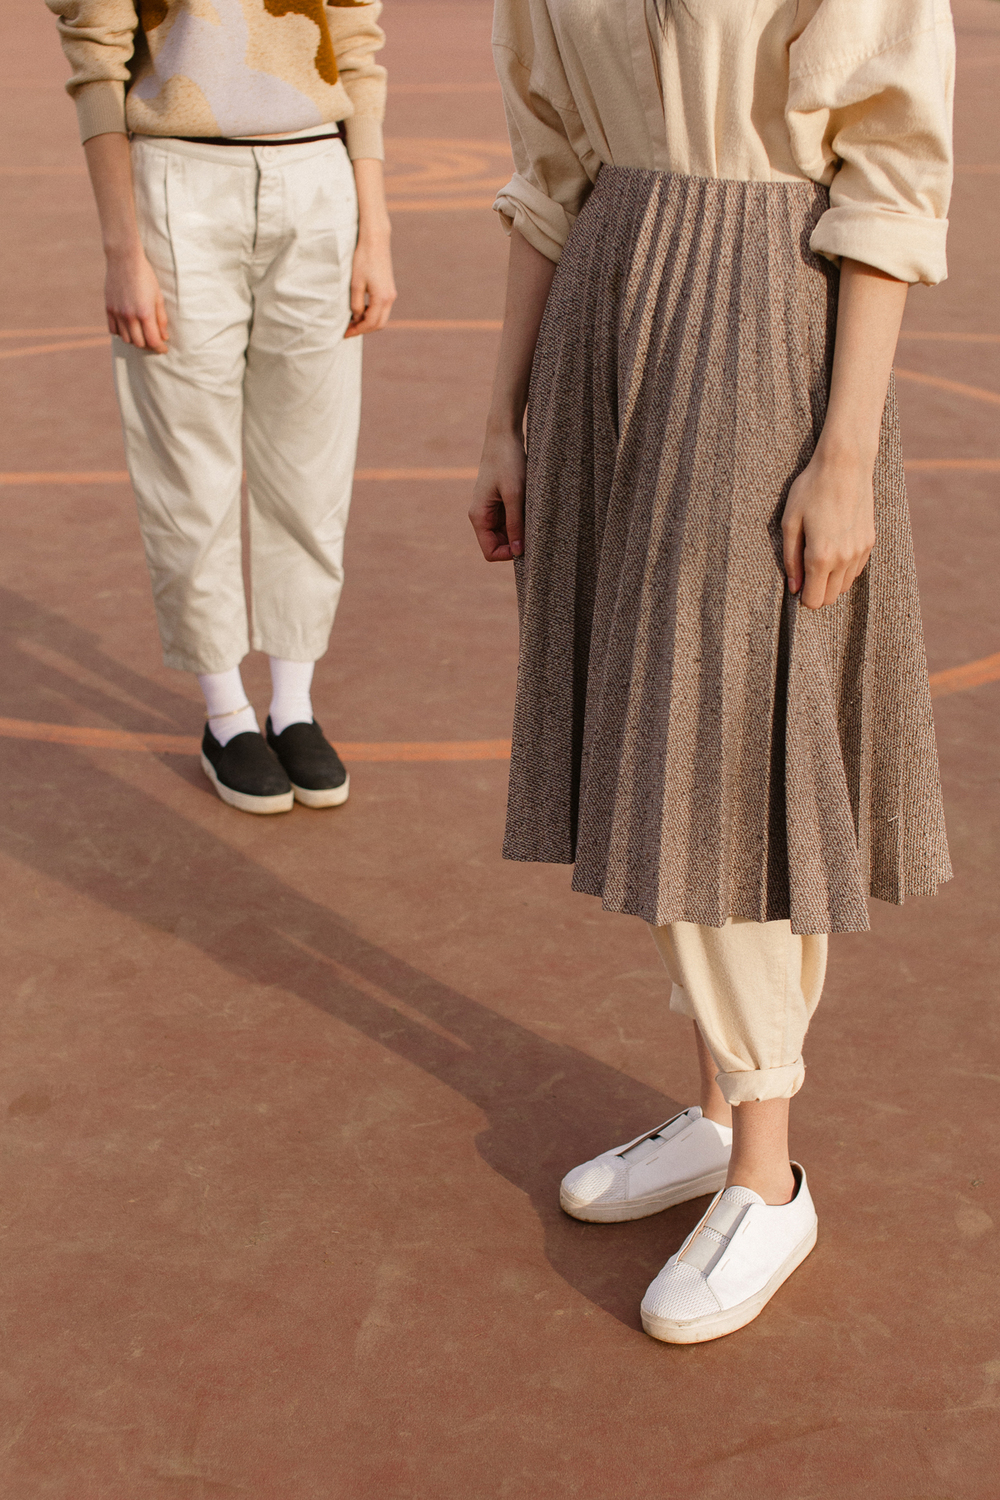 Ritual Pant                                         Kowtow                                          _                                       Vintage Pleated Skirt